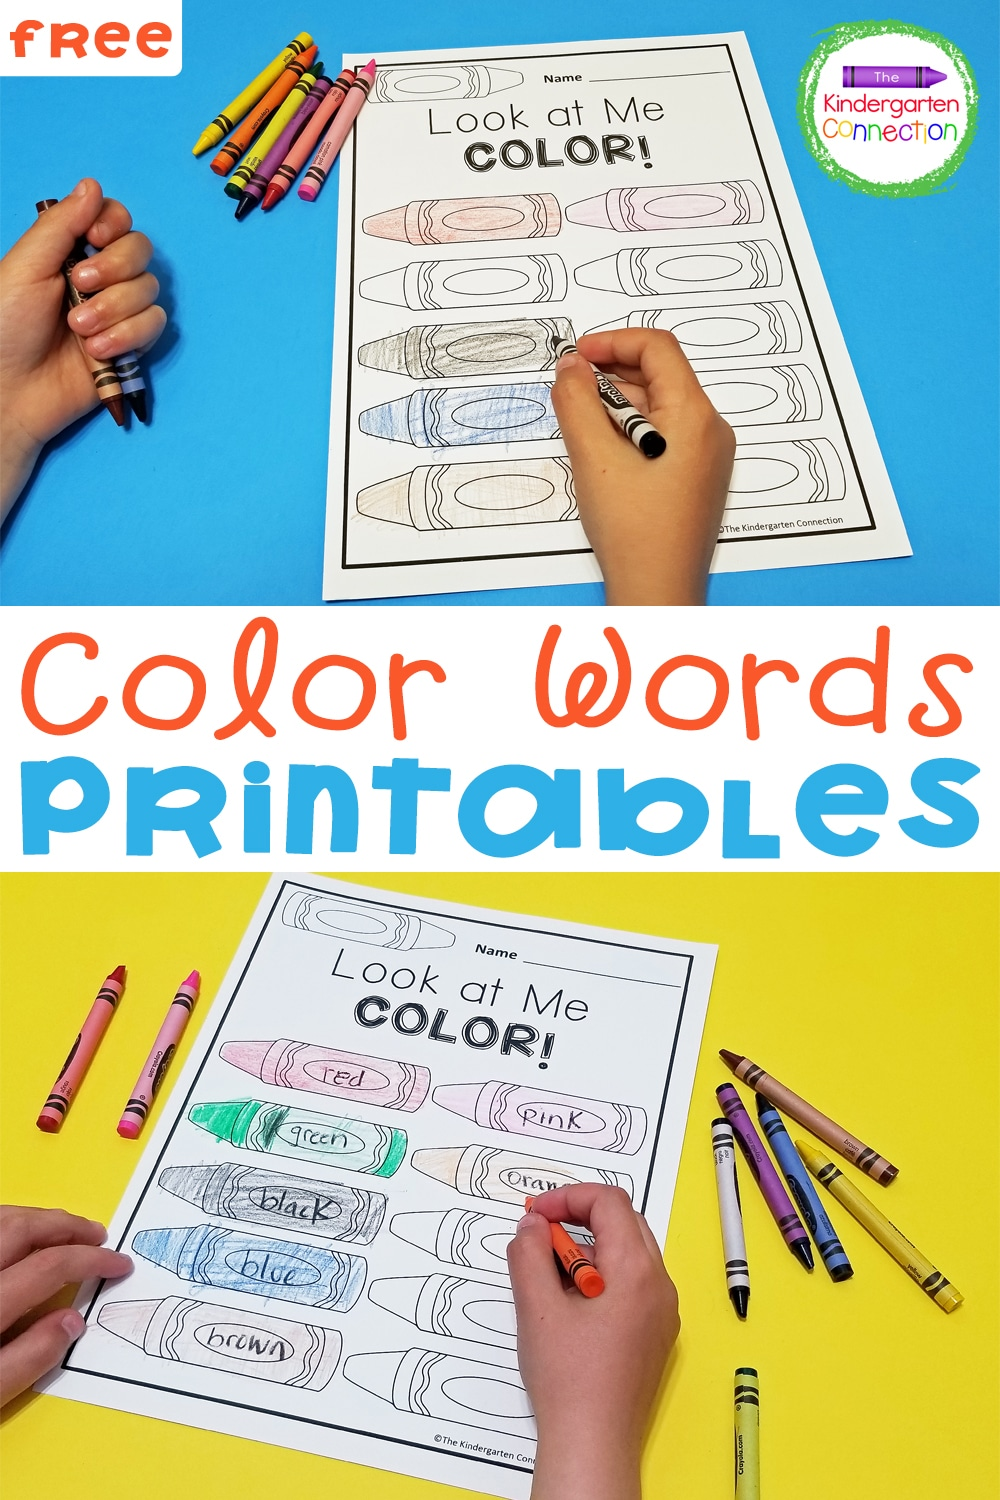 Practicing color recognition and color words just got more fun with these free Color Words Printables for Pre-K & Kindergarten!